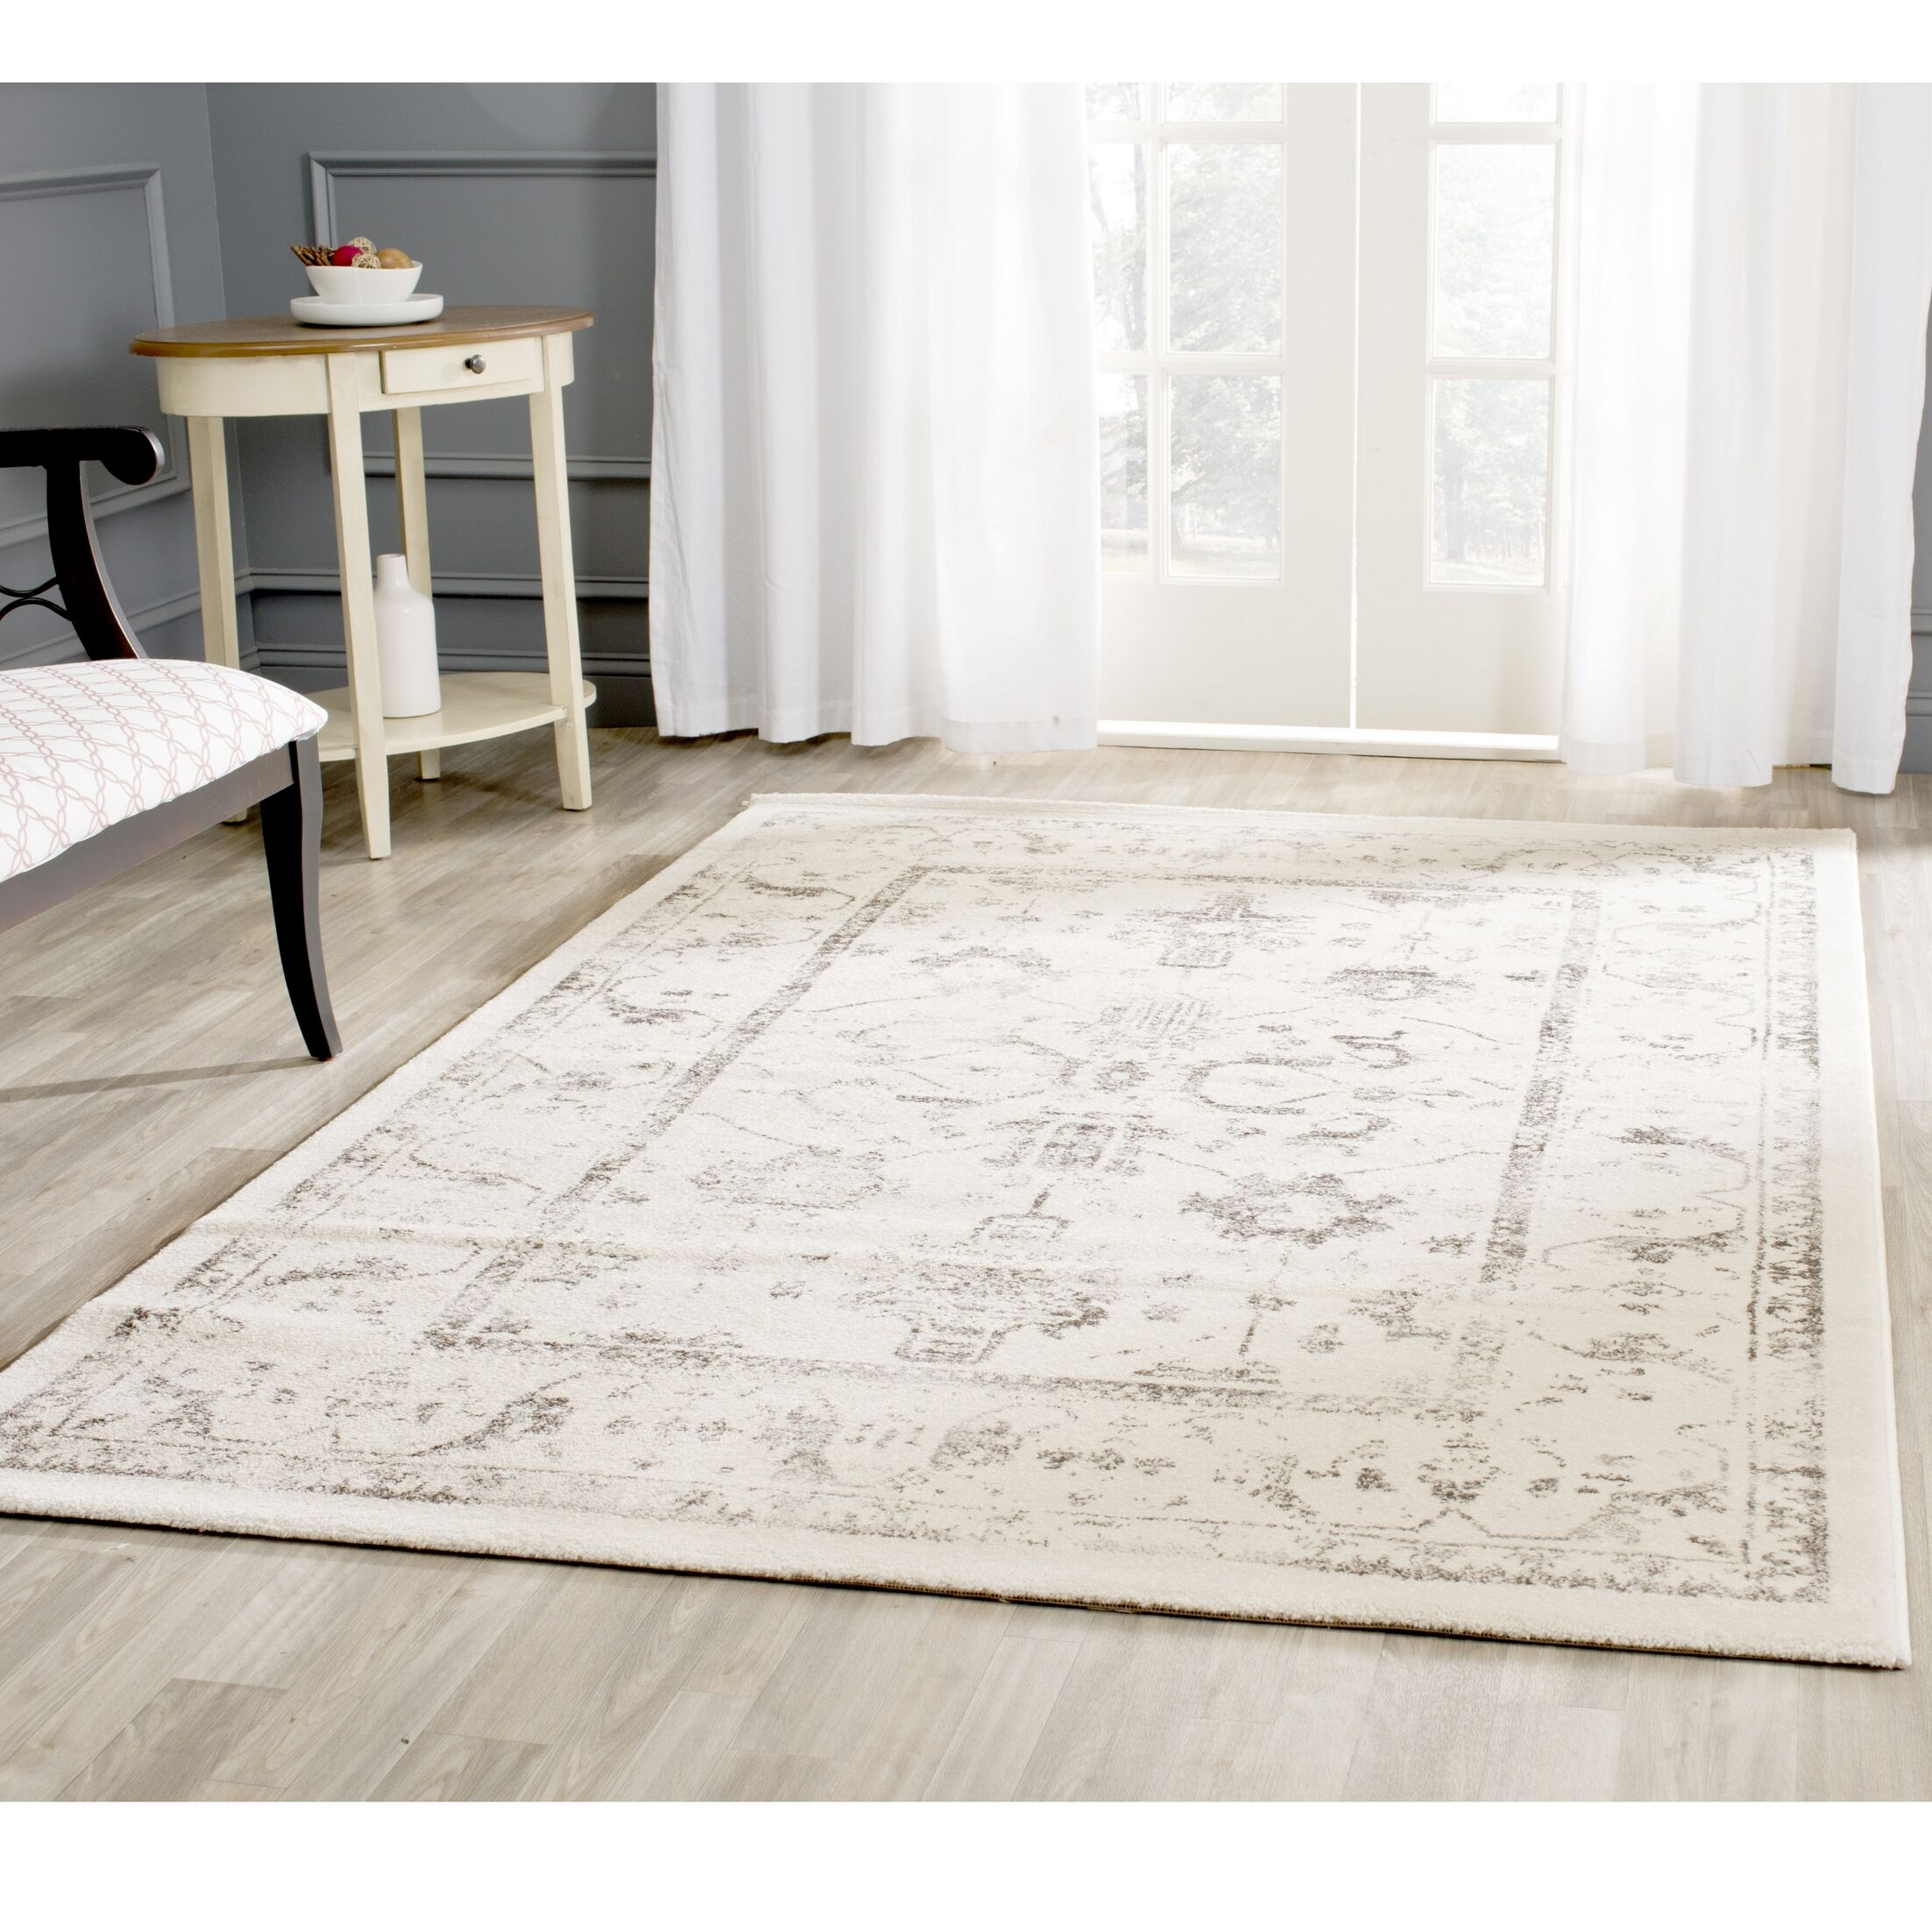 Porcello Ivory/Light Gray Area Rug Rug Size: Rectangle 9' x 12'